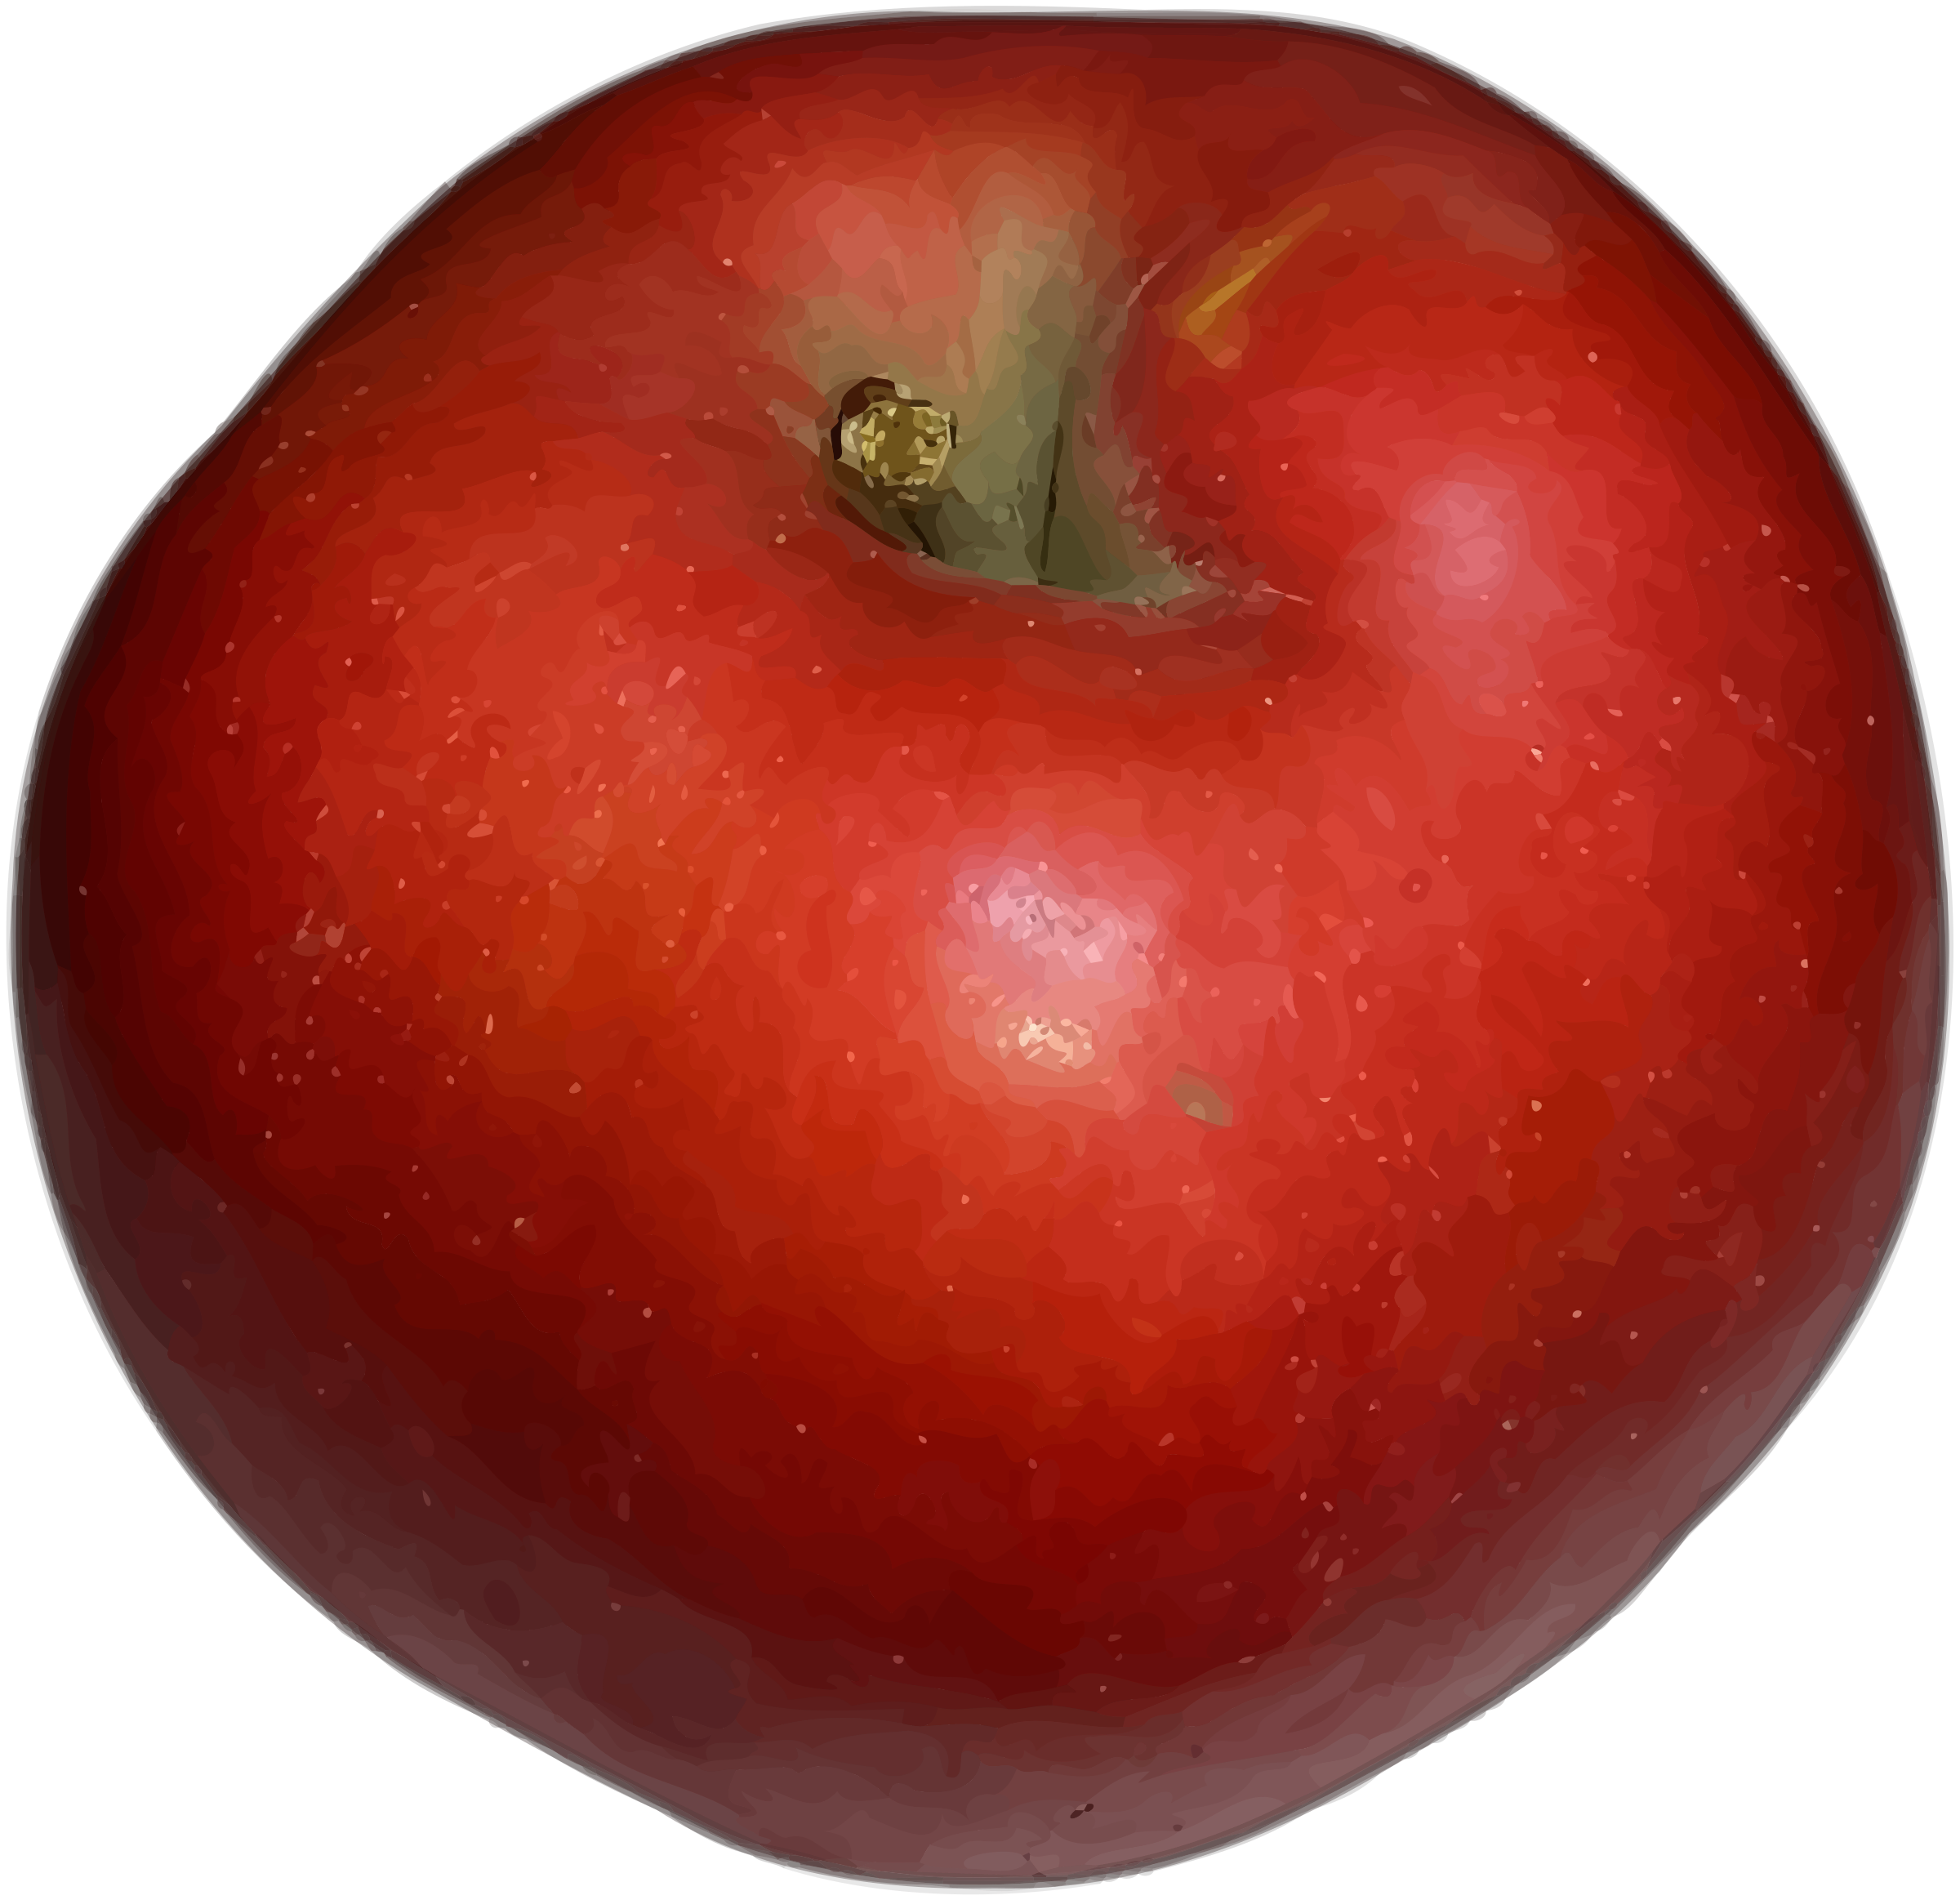 Red apple (higher detail) by Firkin